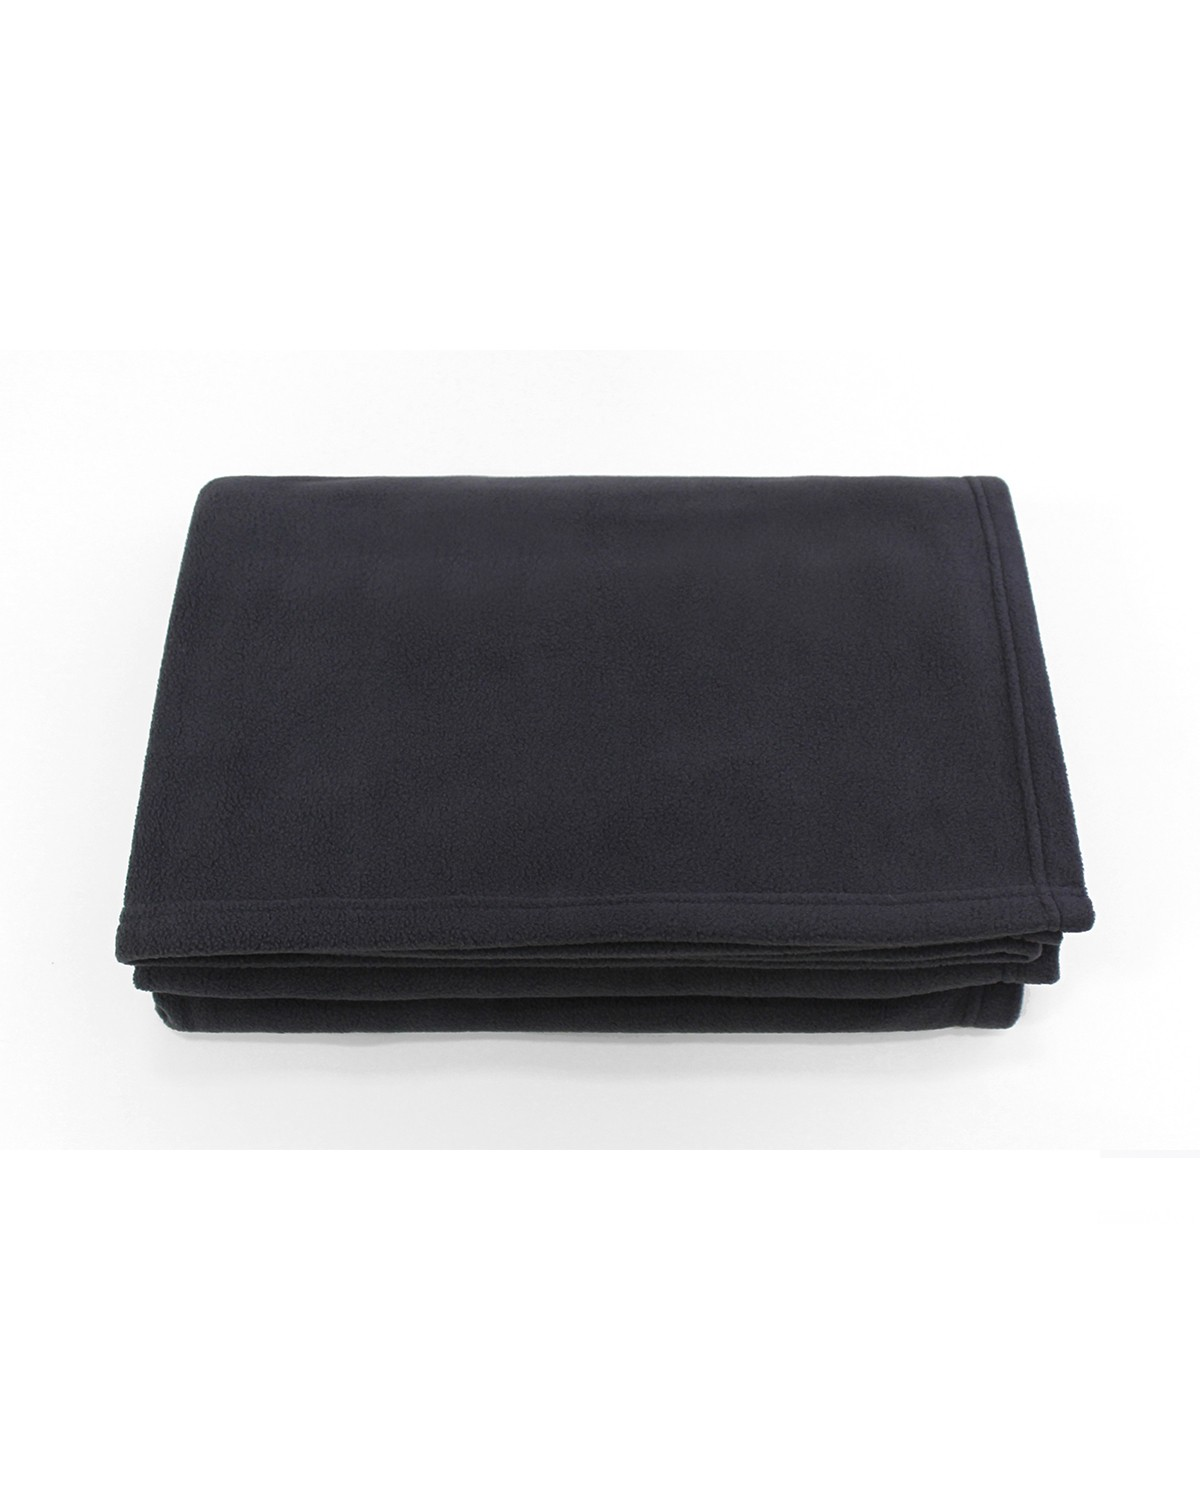 SPT5060 Pro Towels CHARCOAL GRY